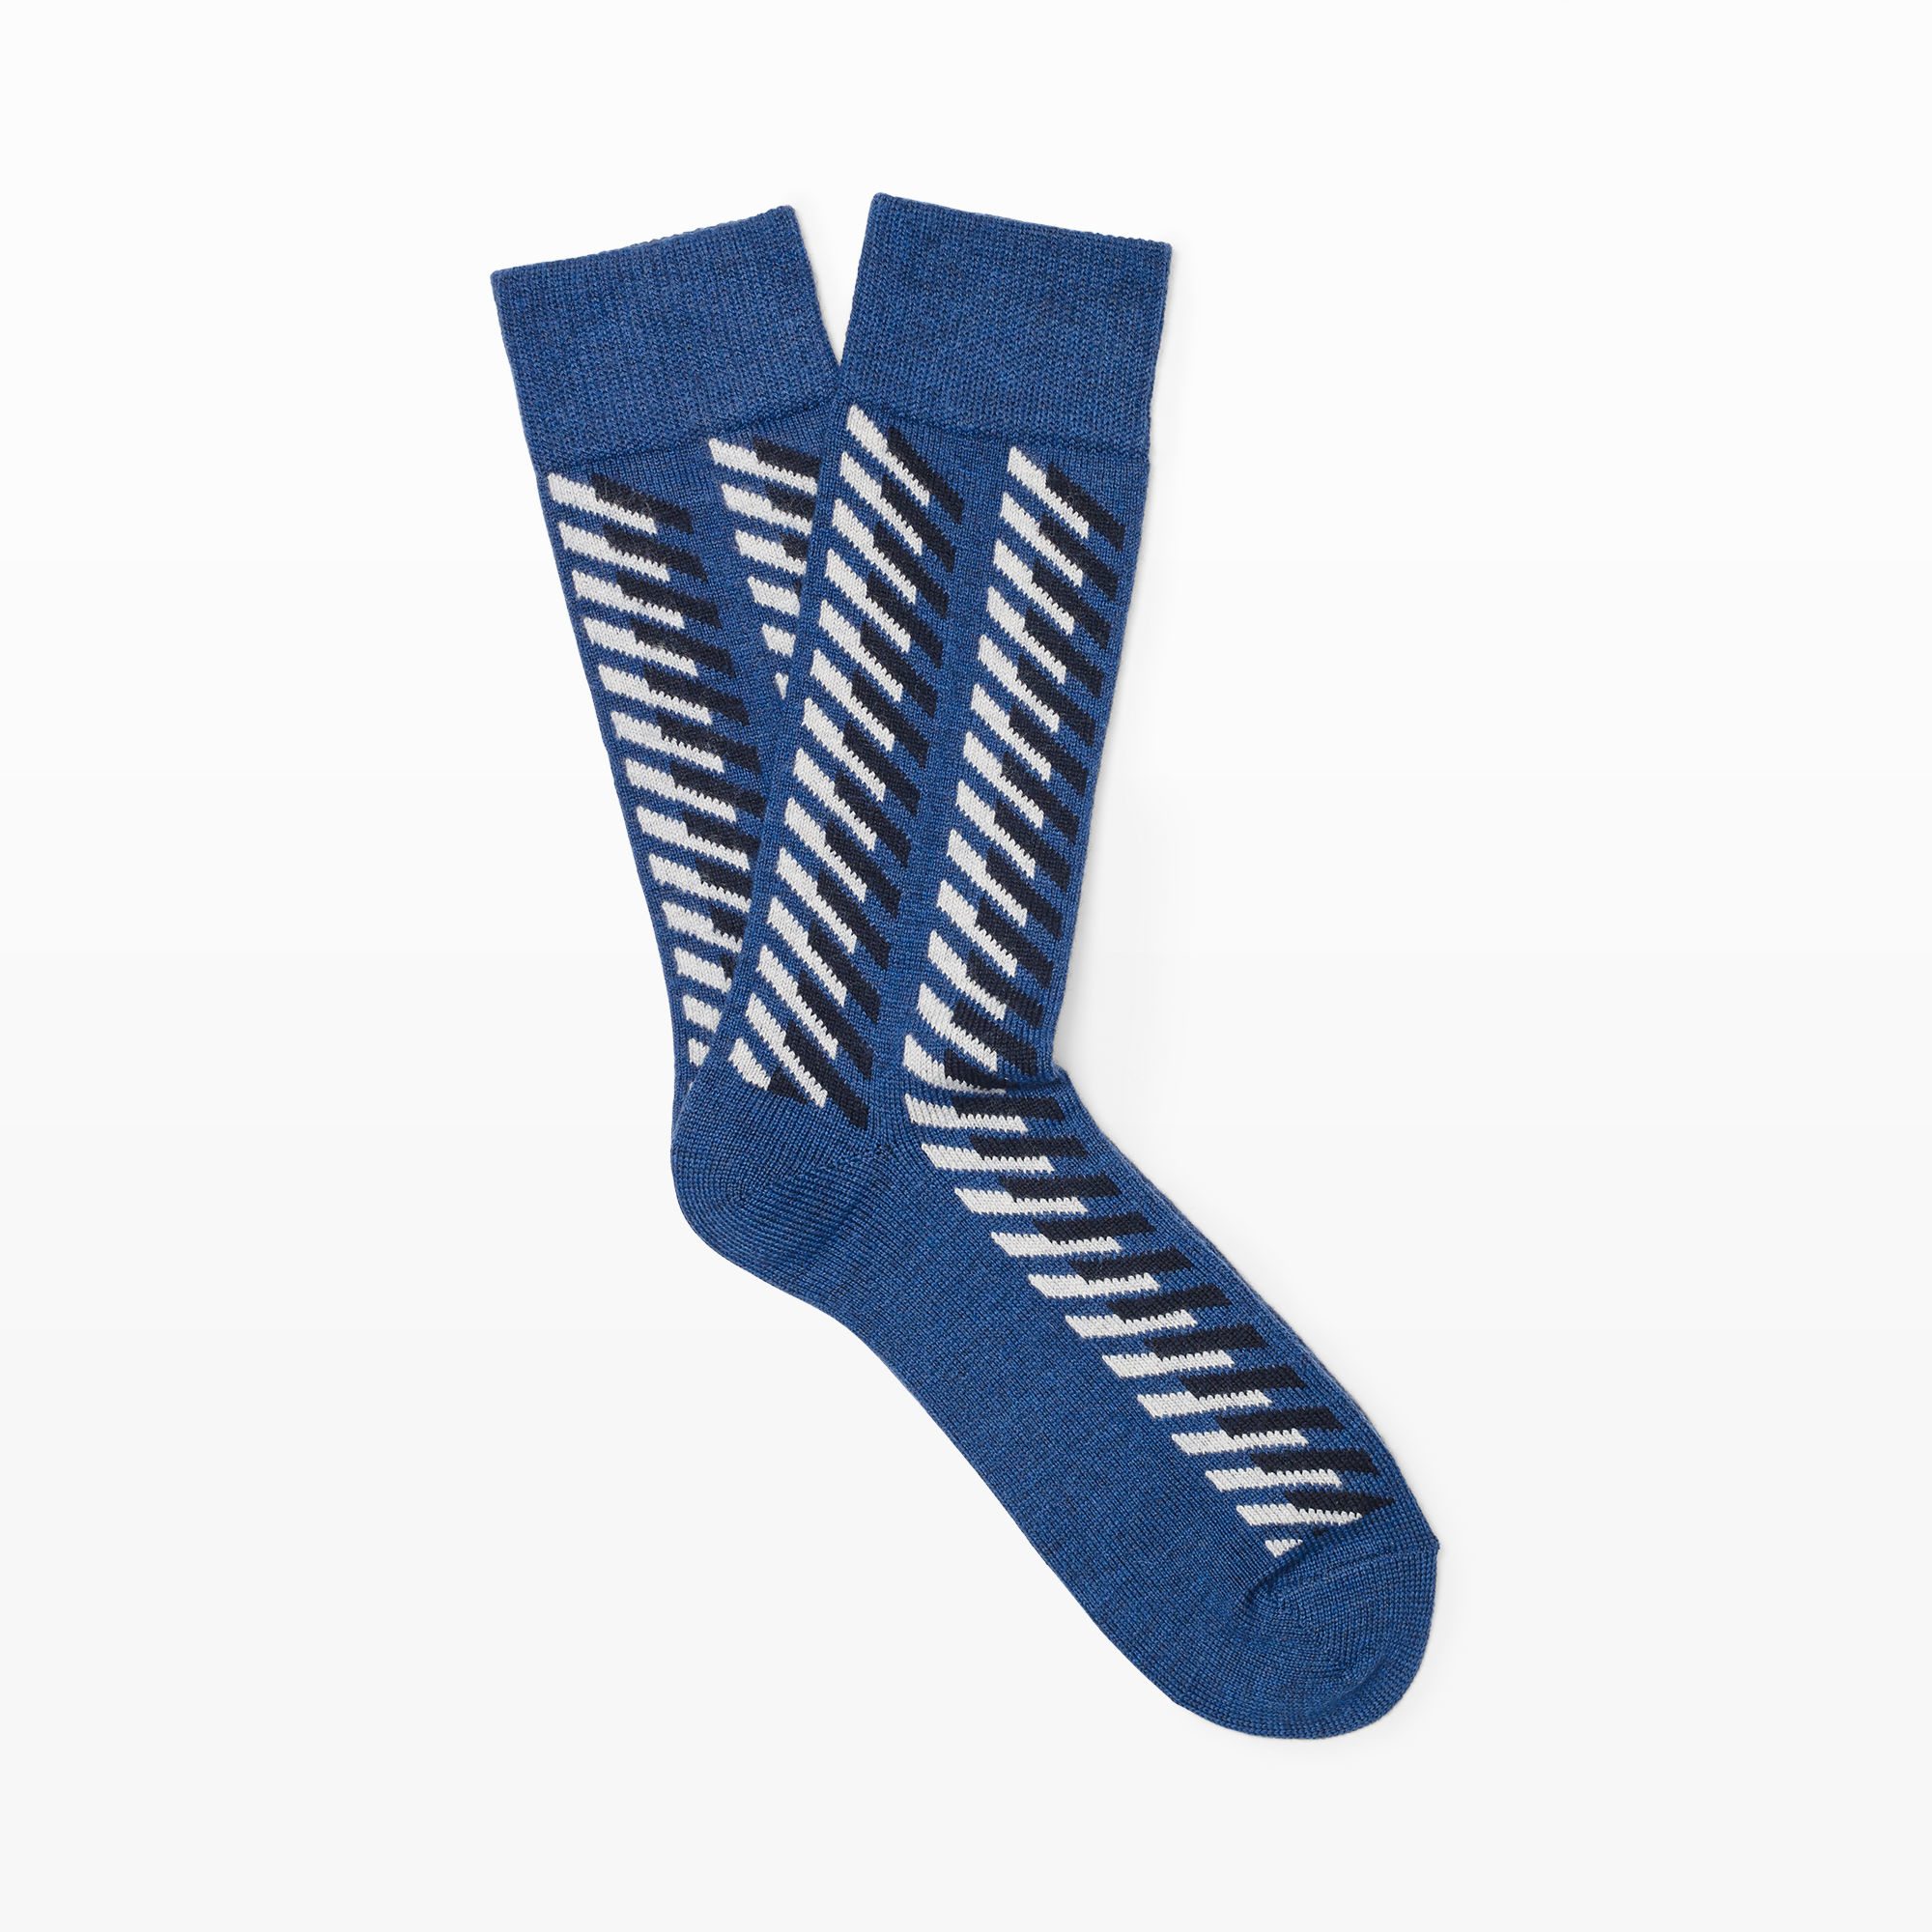 Knitting Pattern For Ski Socks : Club monaco Vintage Ski Motif Sock in Blue for Men Lyst